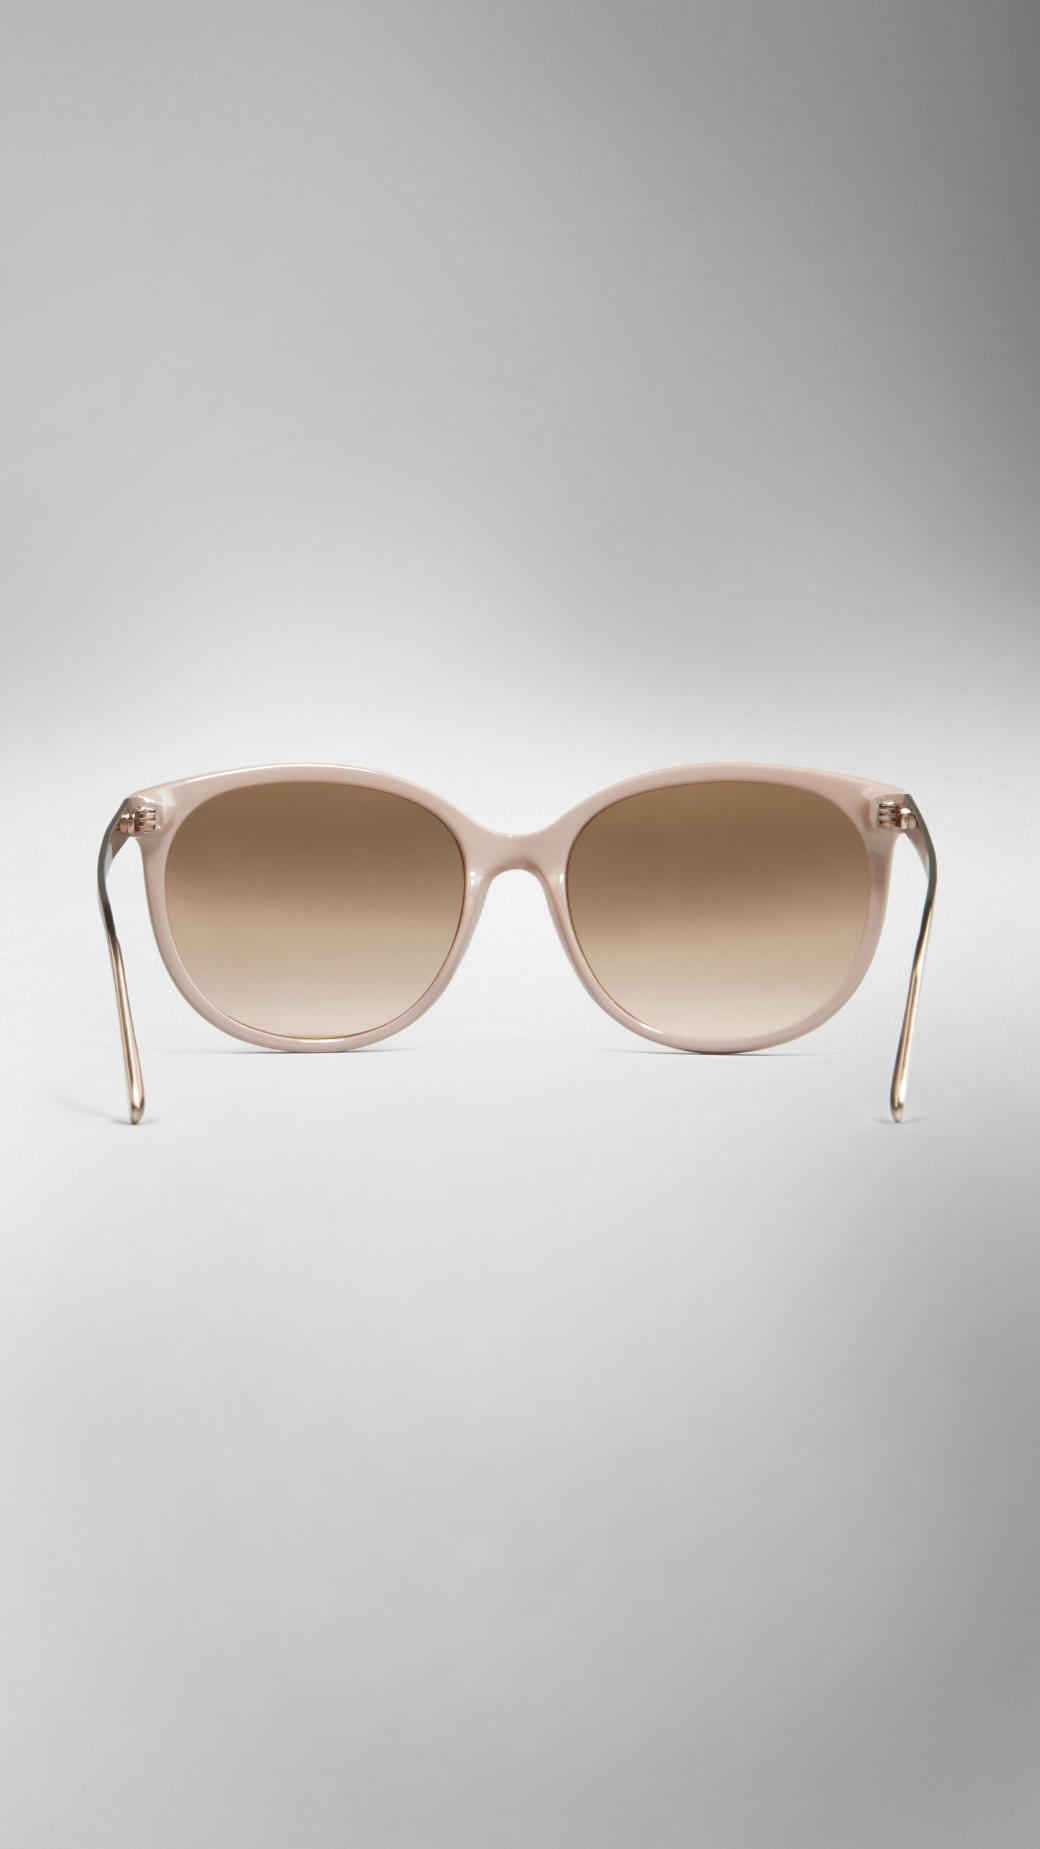 2348d61dd7119 Burberry Spark Cat-Eye Sunglasses in Natural - Lyst